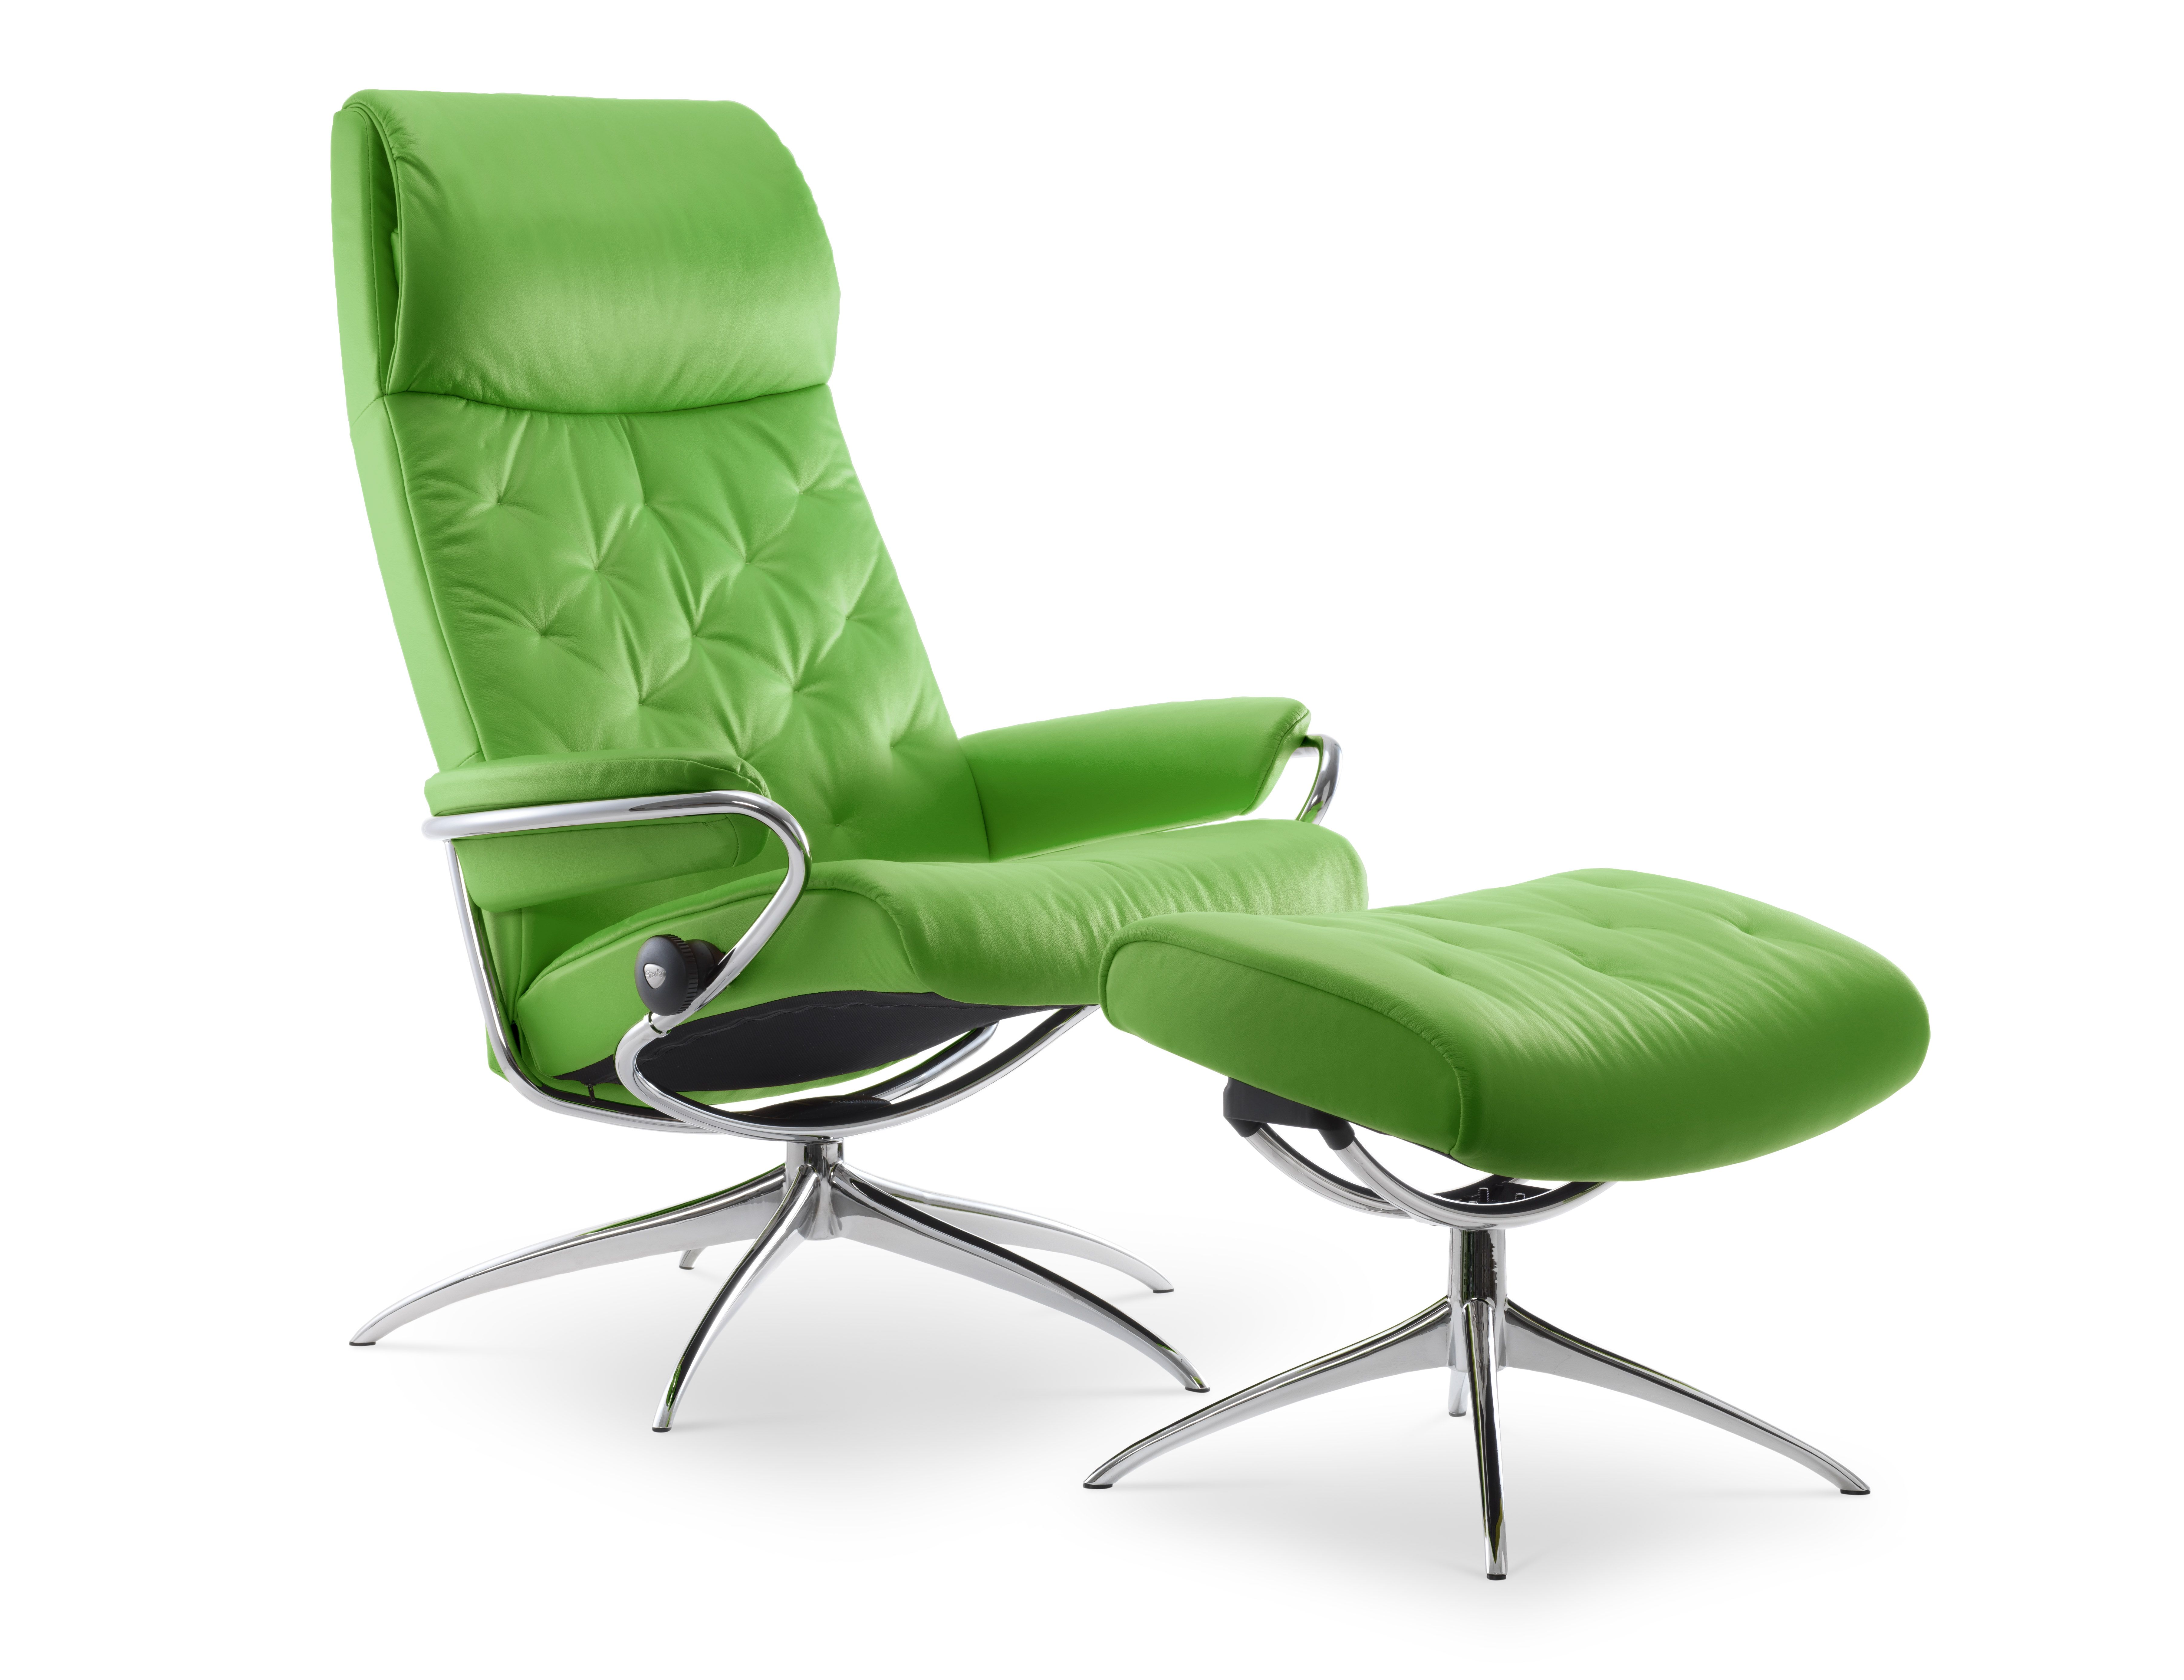 Stressless Sessel Metro High Back Stressless Metro High Back Relaxsessel Inkl Hocker In Der